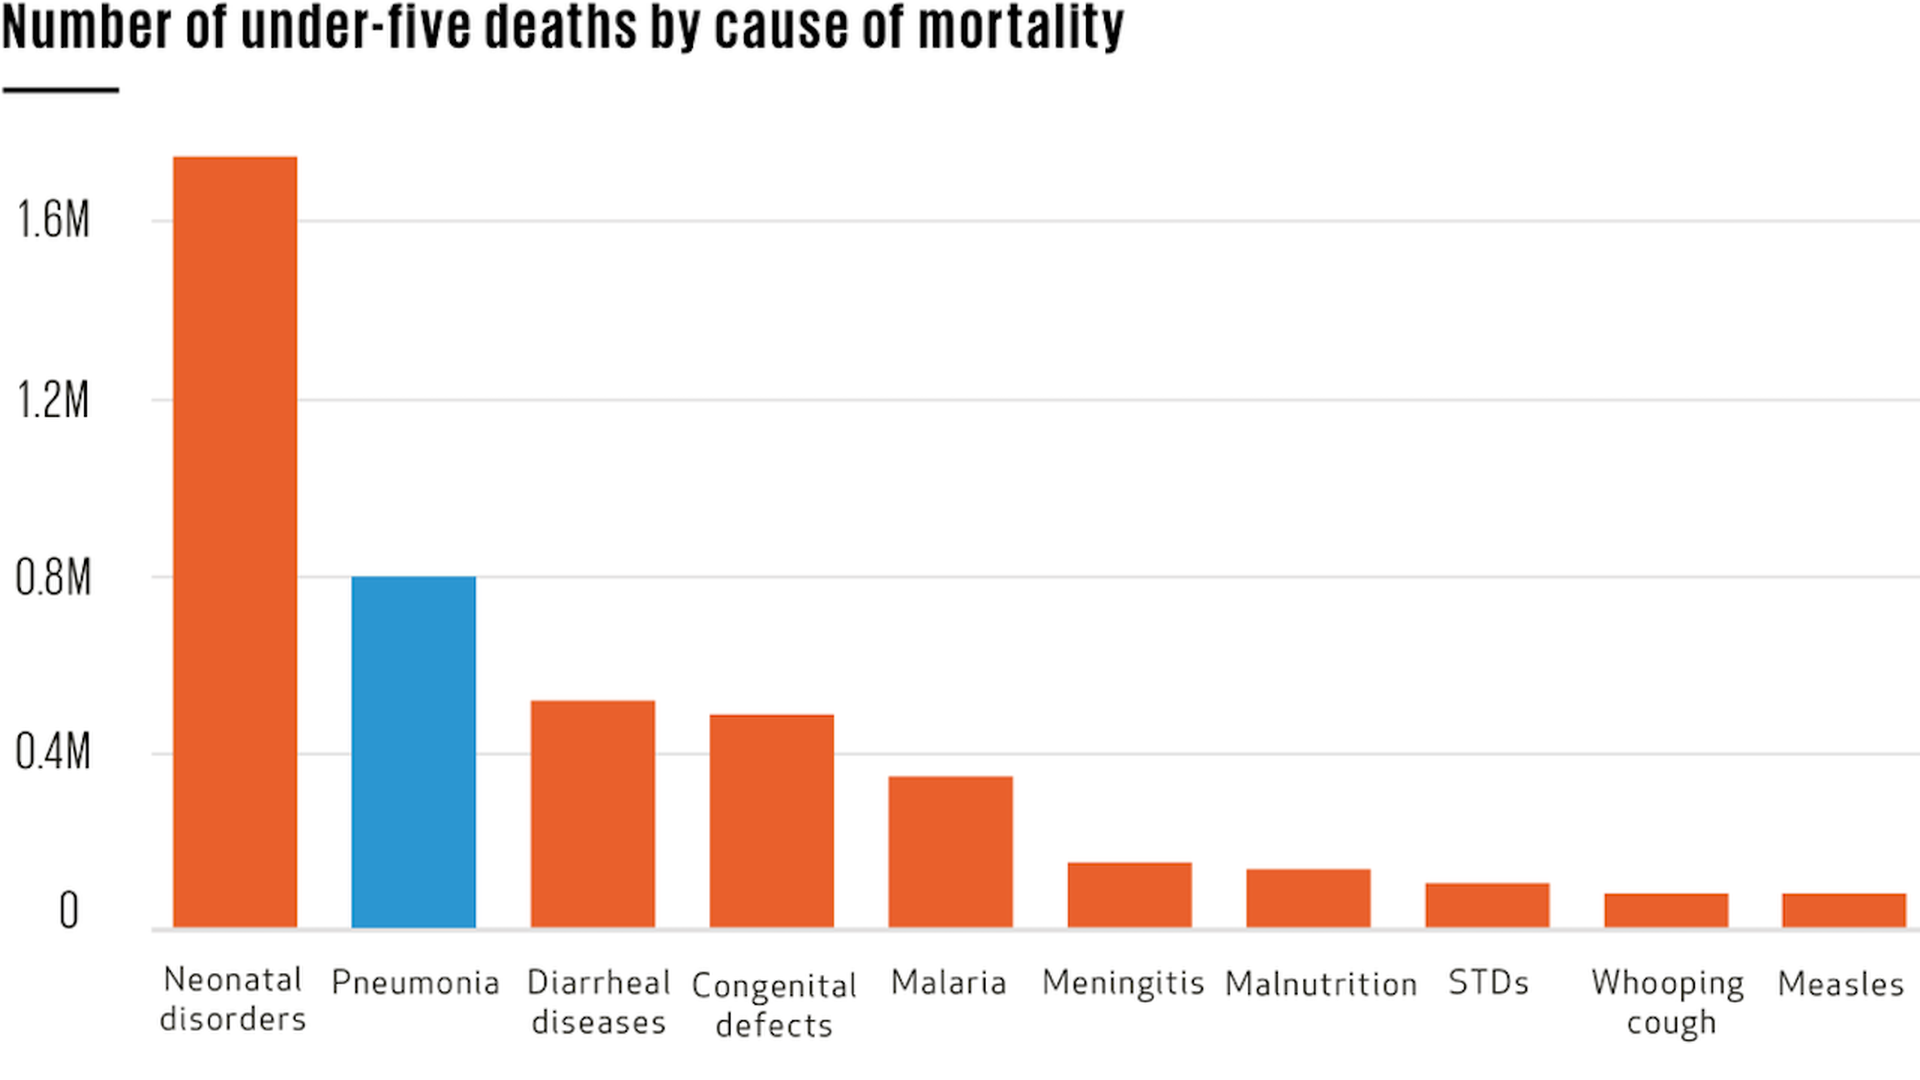 Chart depicting the number of under-five deaths cause of mortality